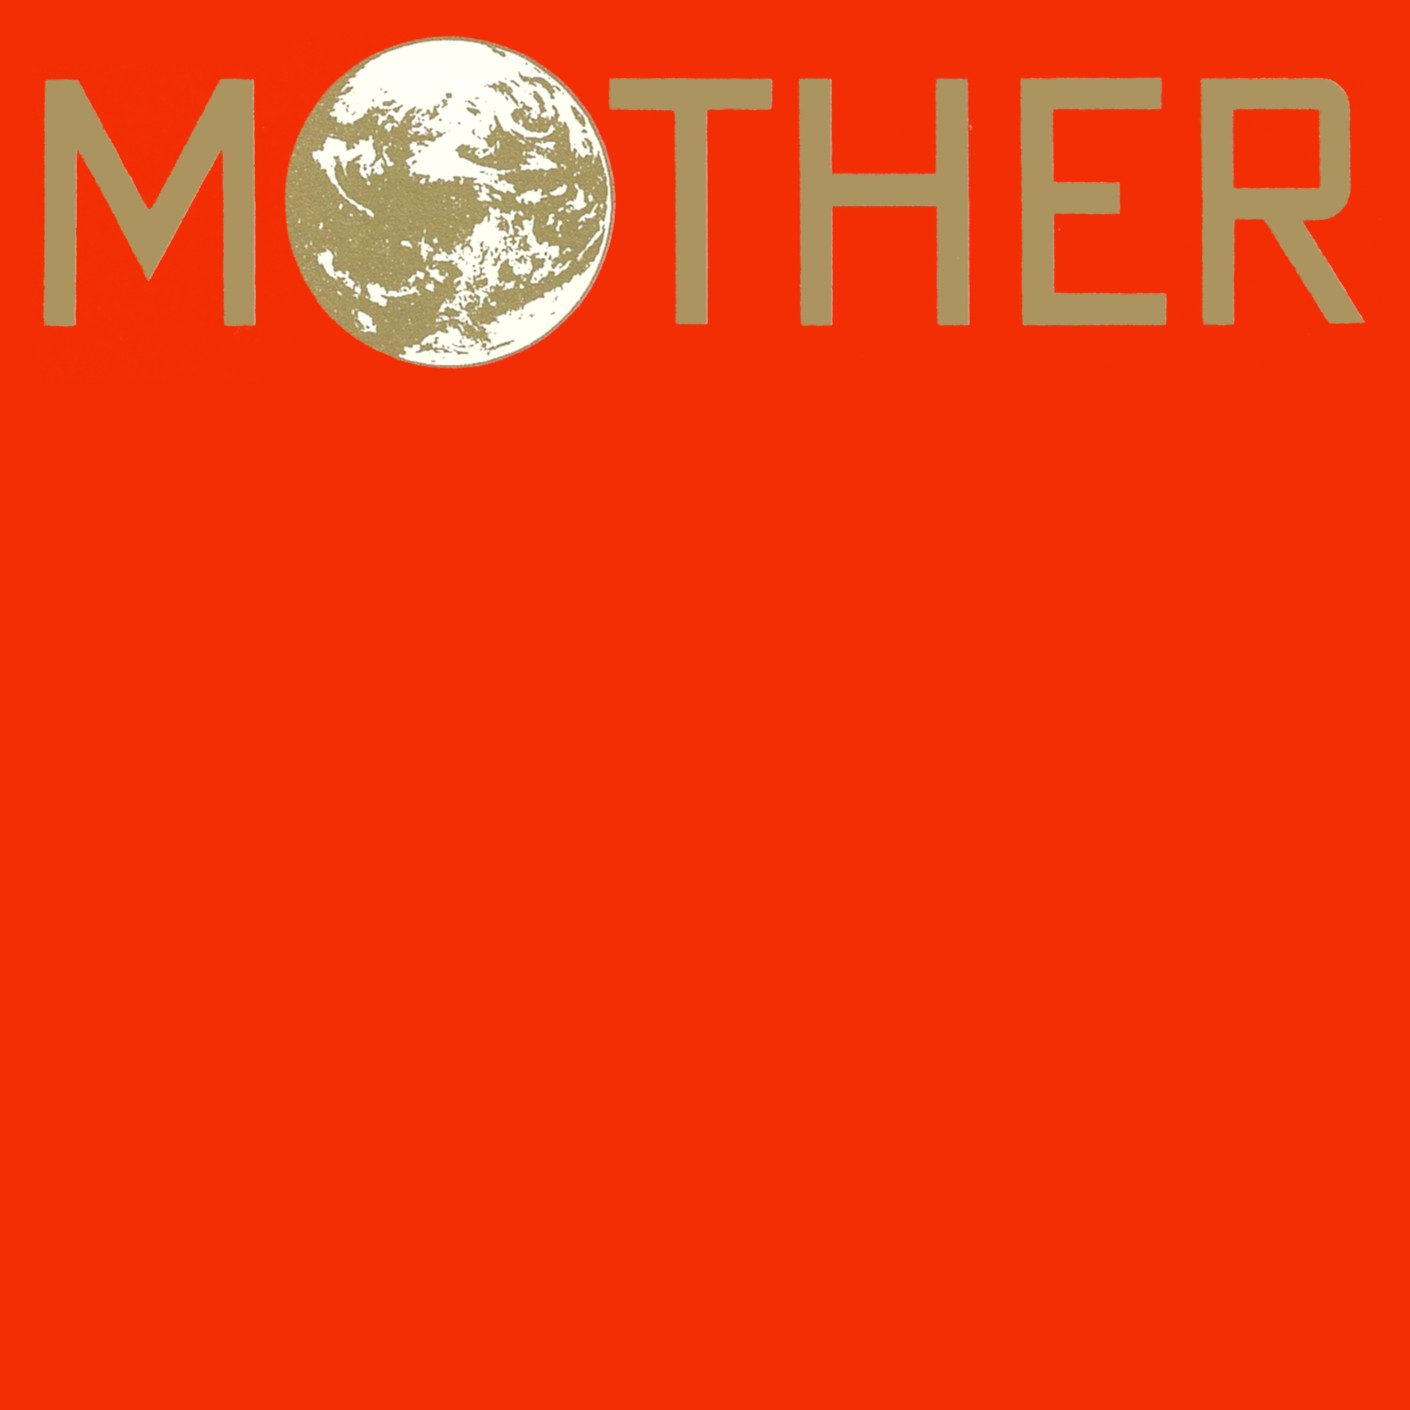 MOTHER Original Soundtrack Digital  Remastering